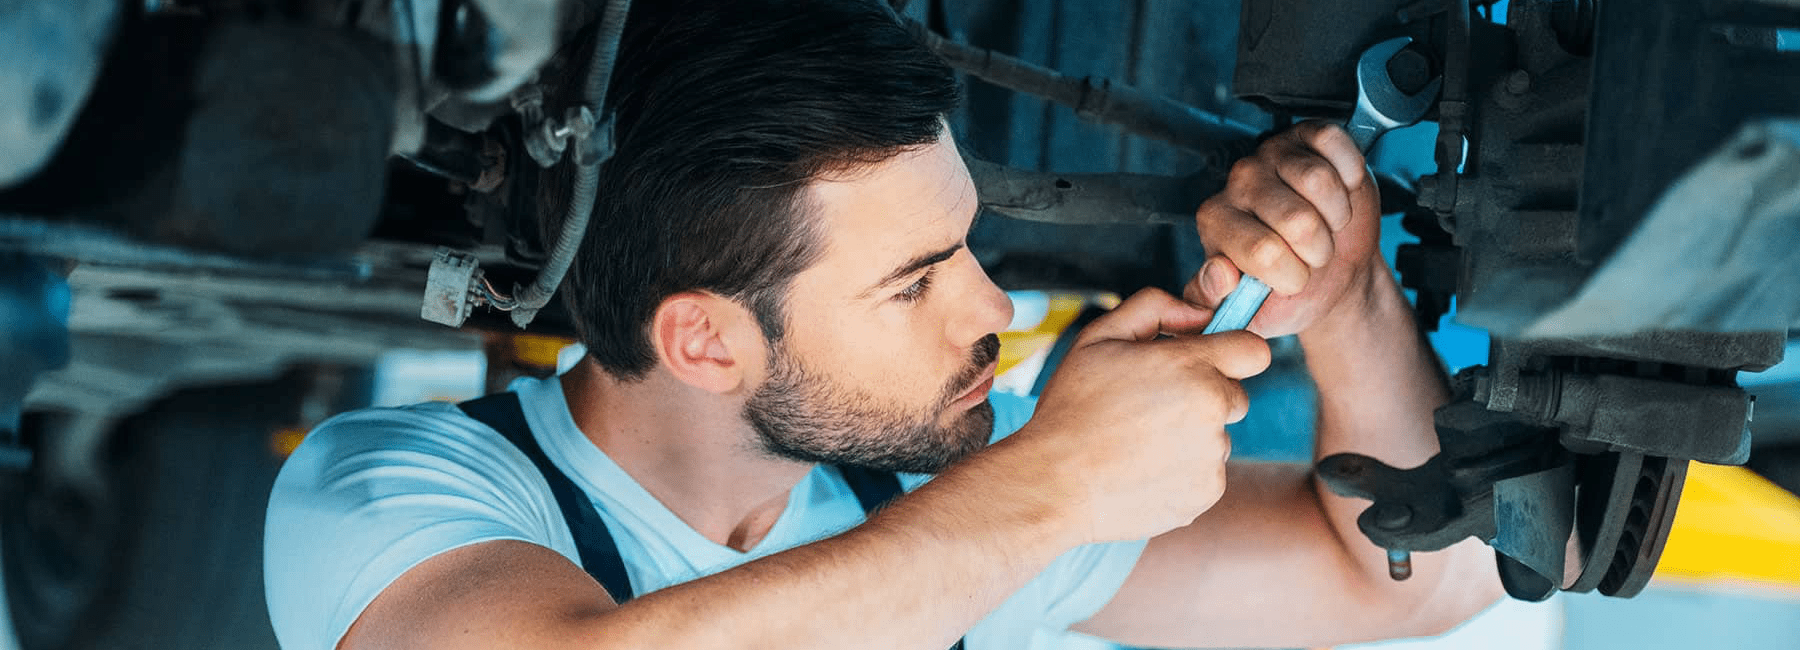 service man with wrench loosens bolt under car